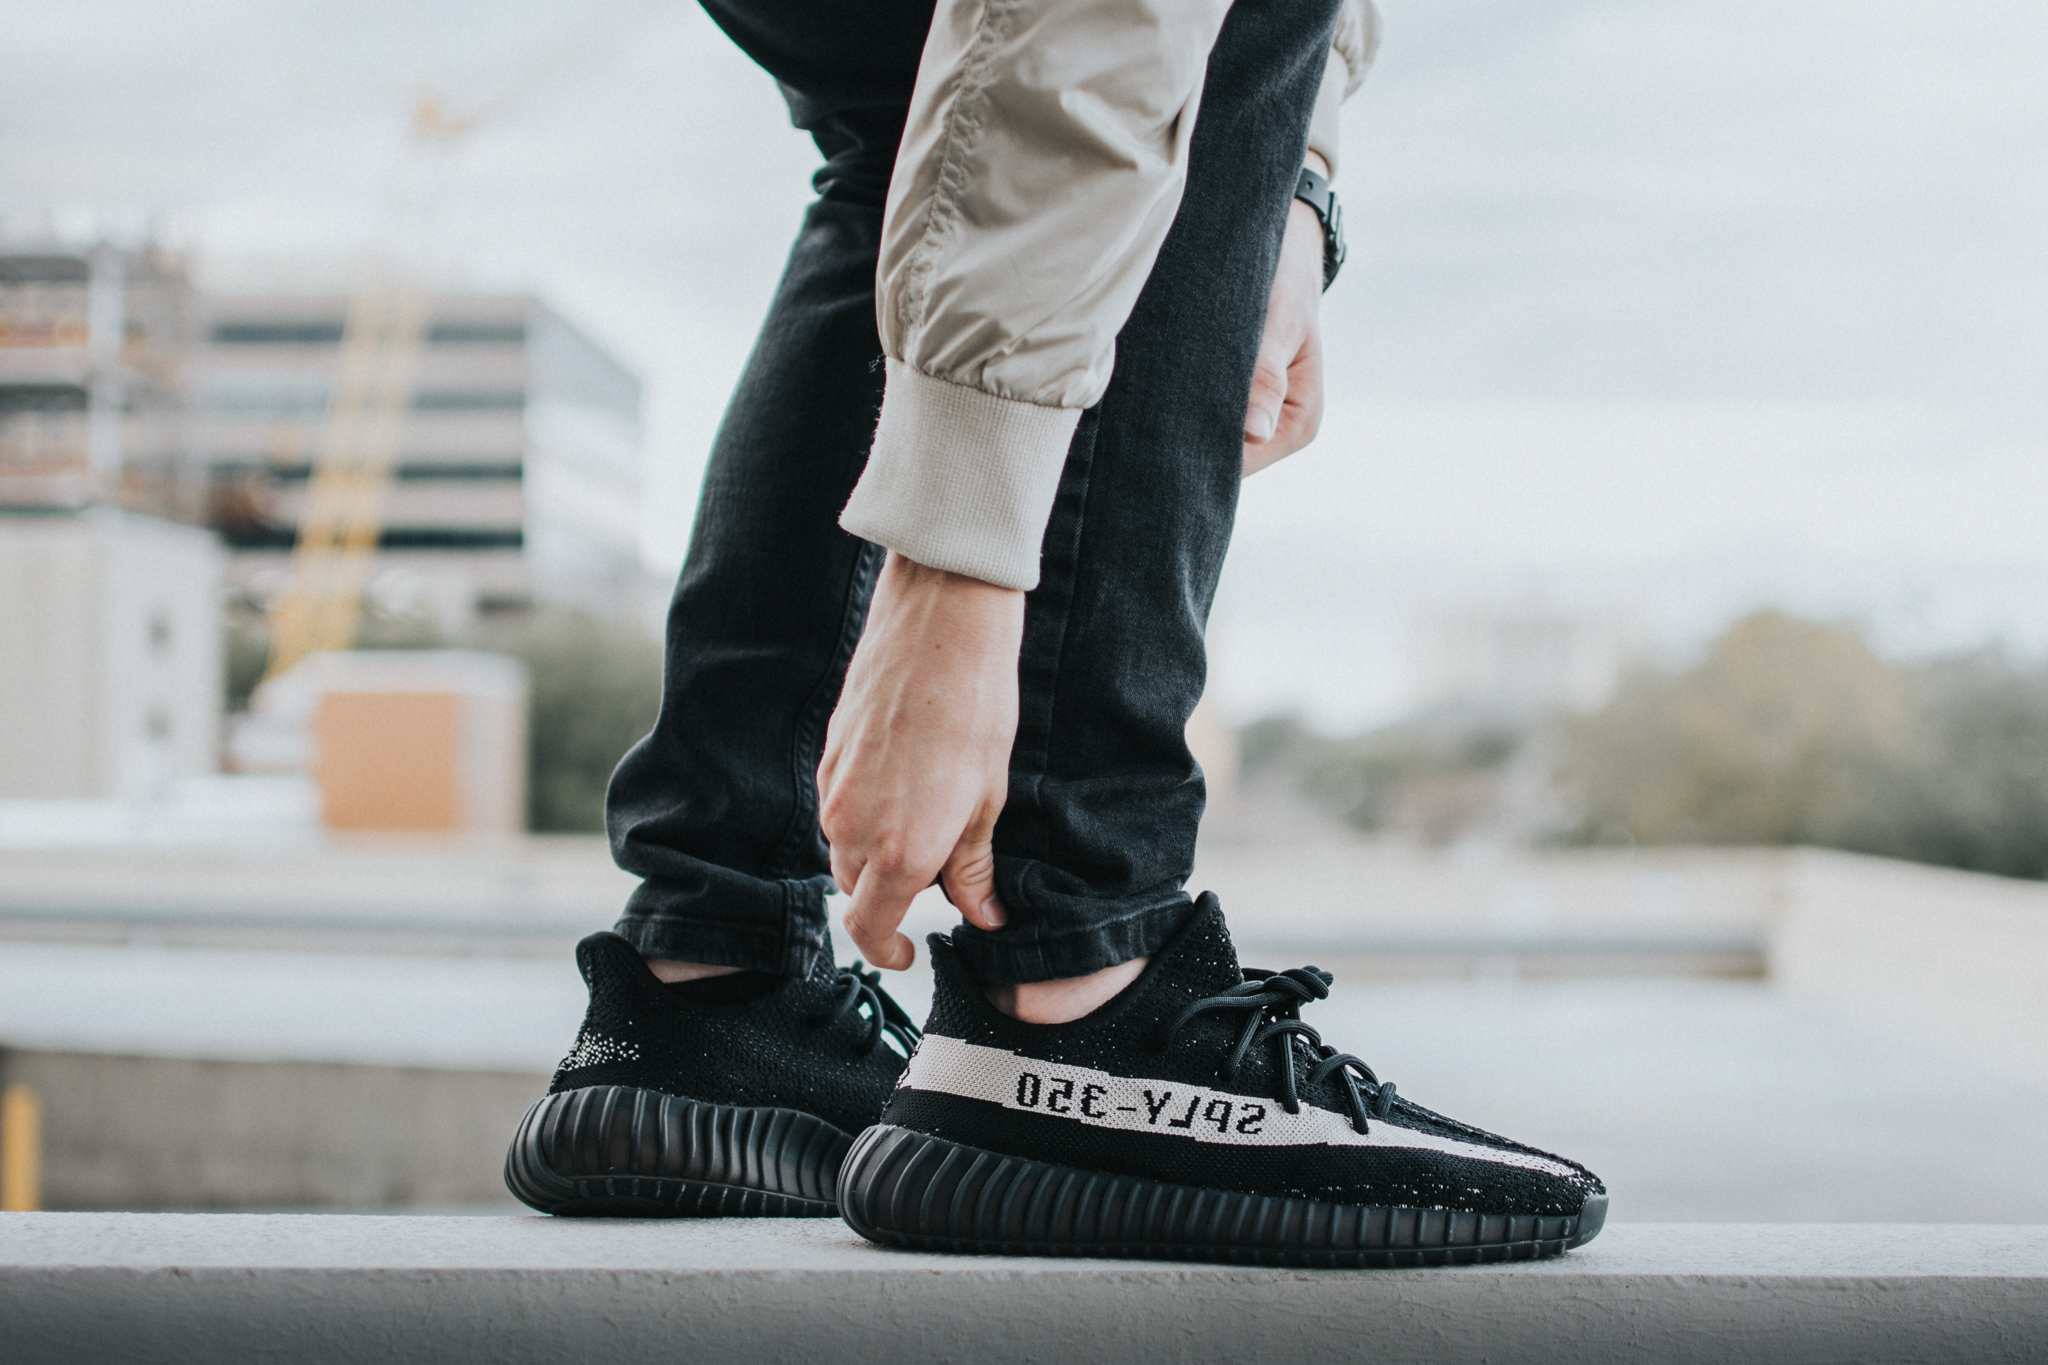 Black and off-white Yeezy Sply 350